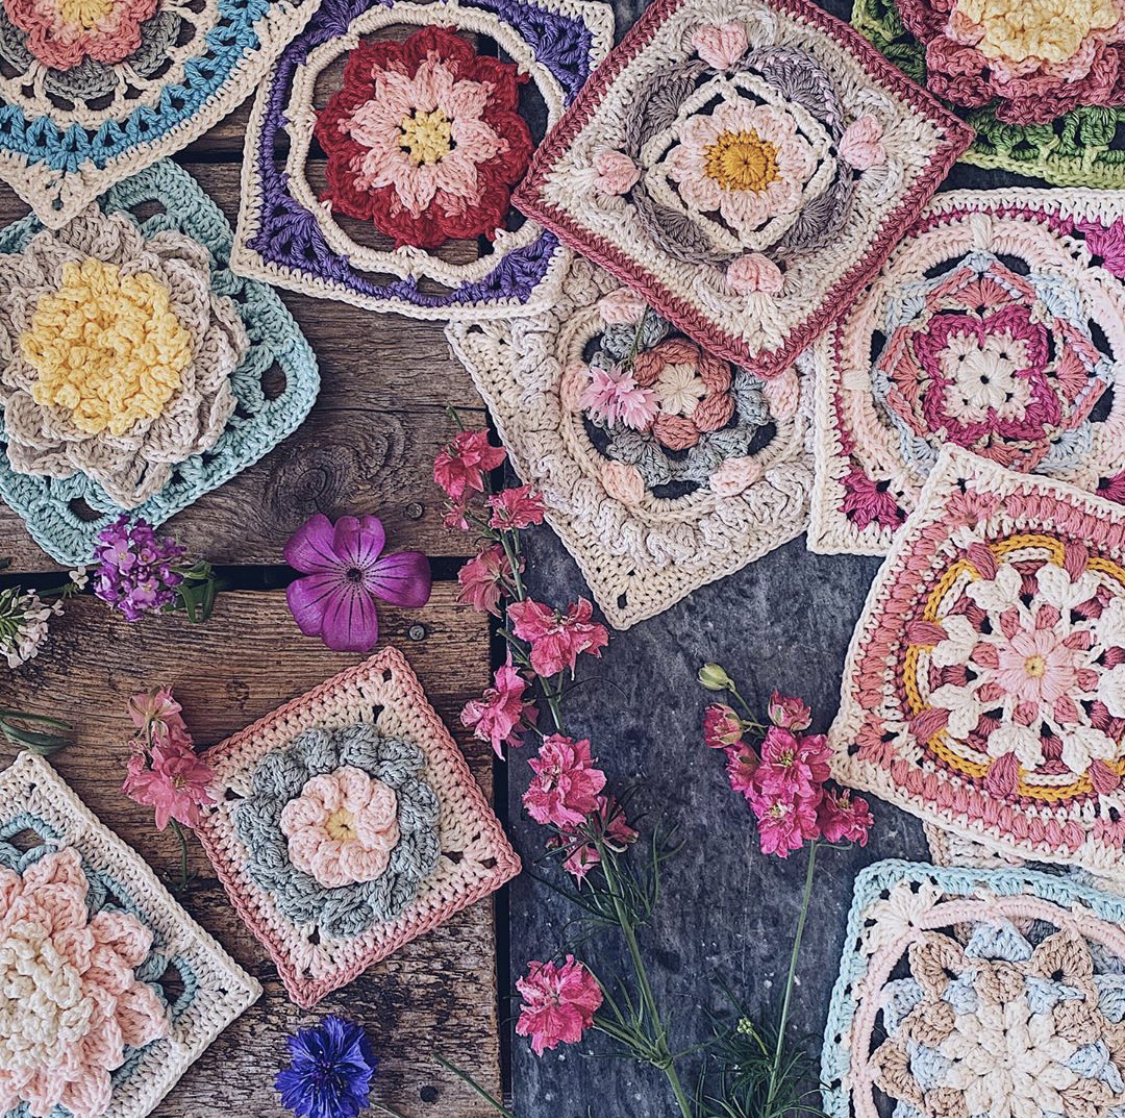 A flatlay picture of beautiful textured granny squares and picked flowers in lots of different colors